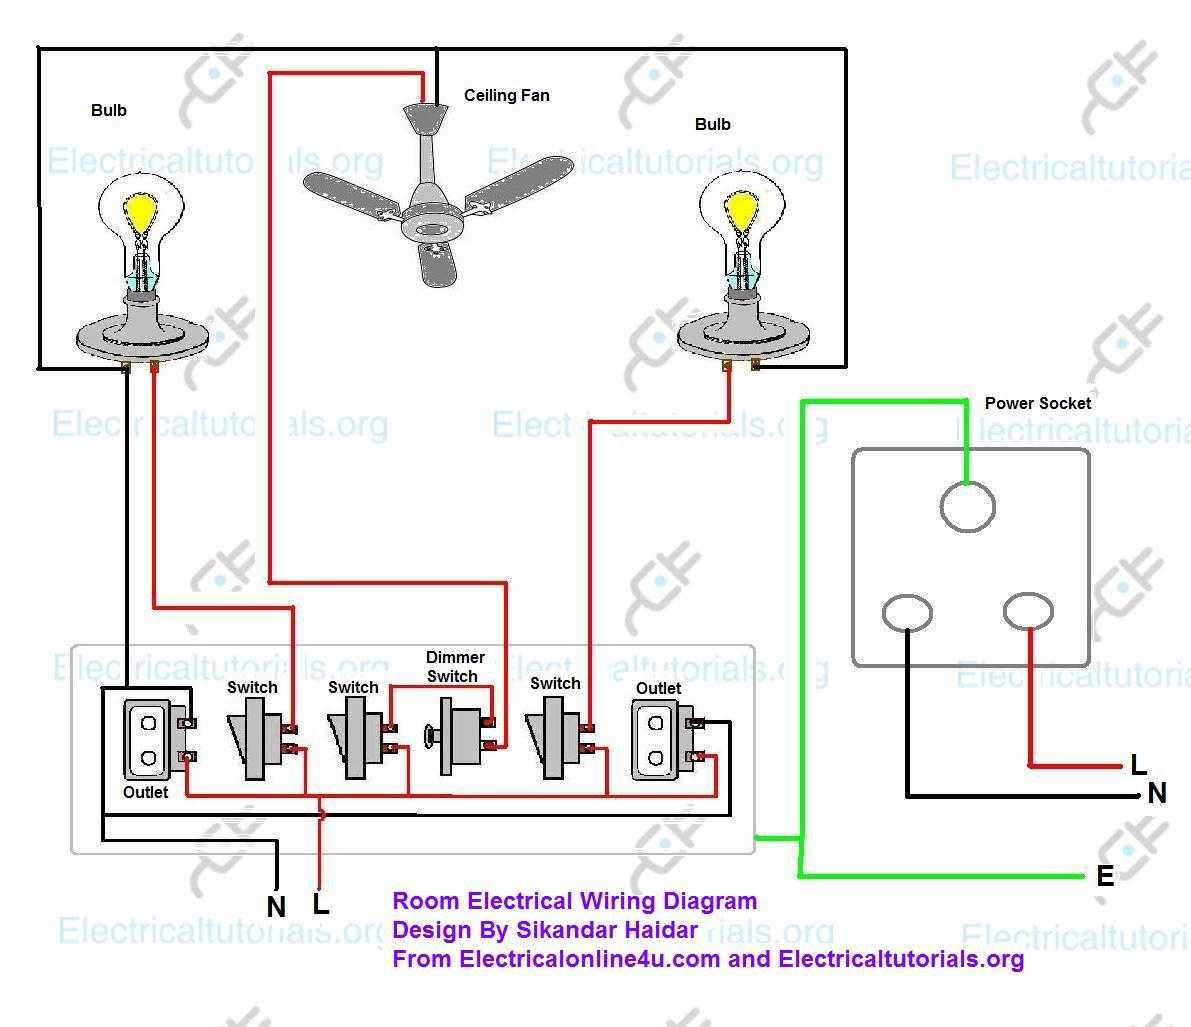 electric circuit drawing at getdrawings.com | free for ... household wiring diagrams